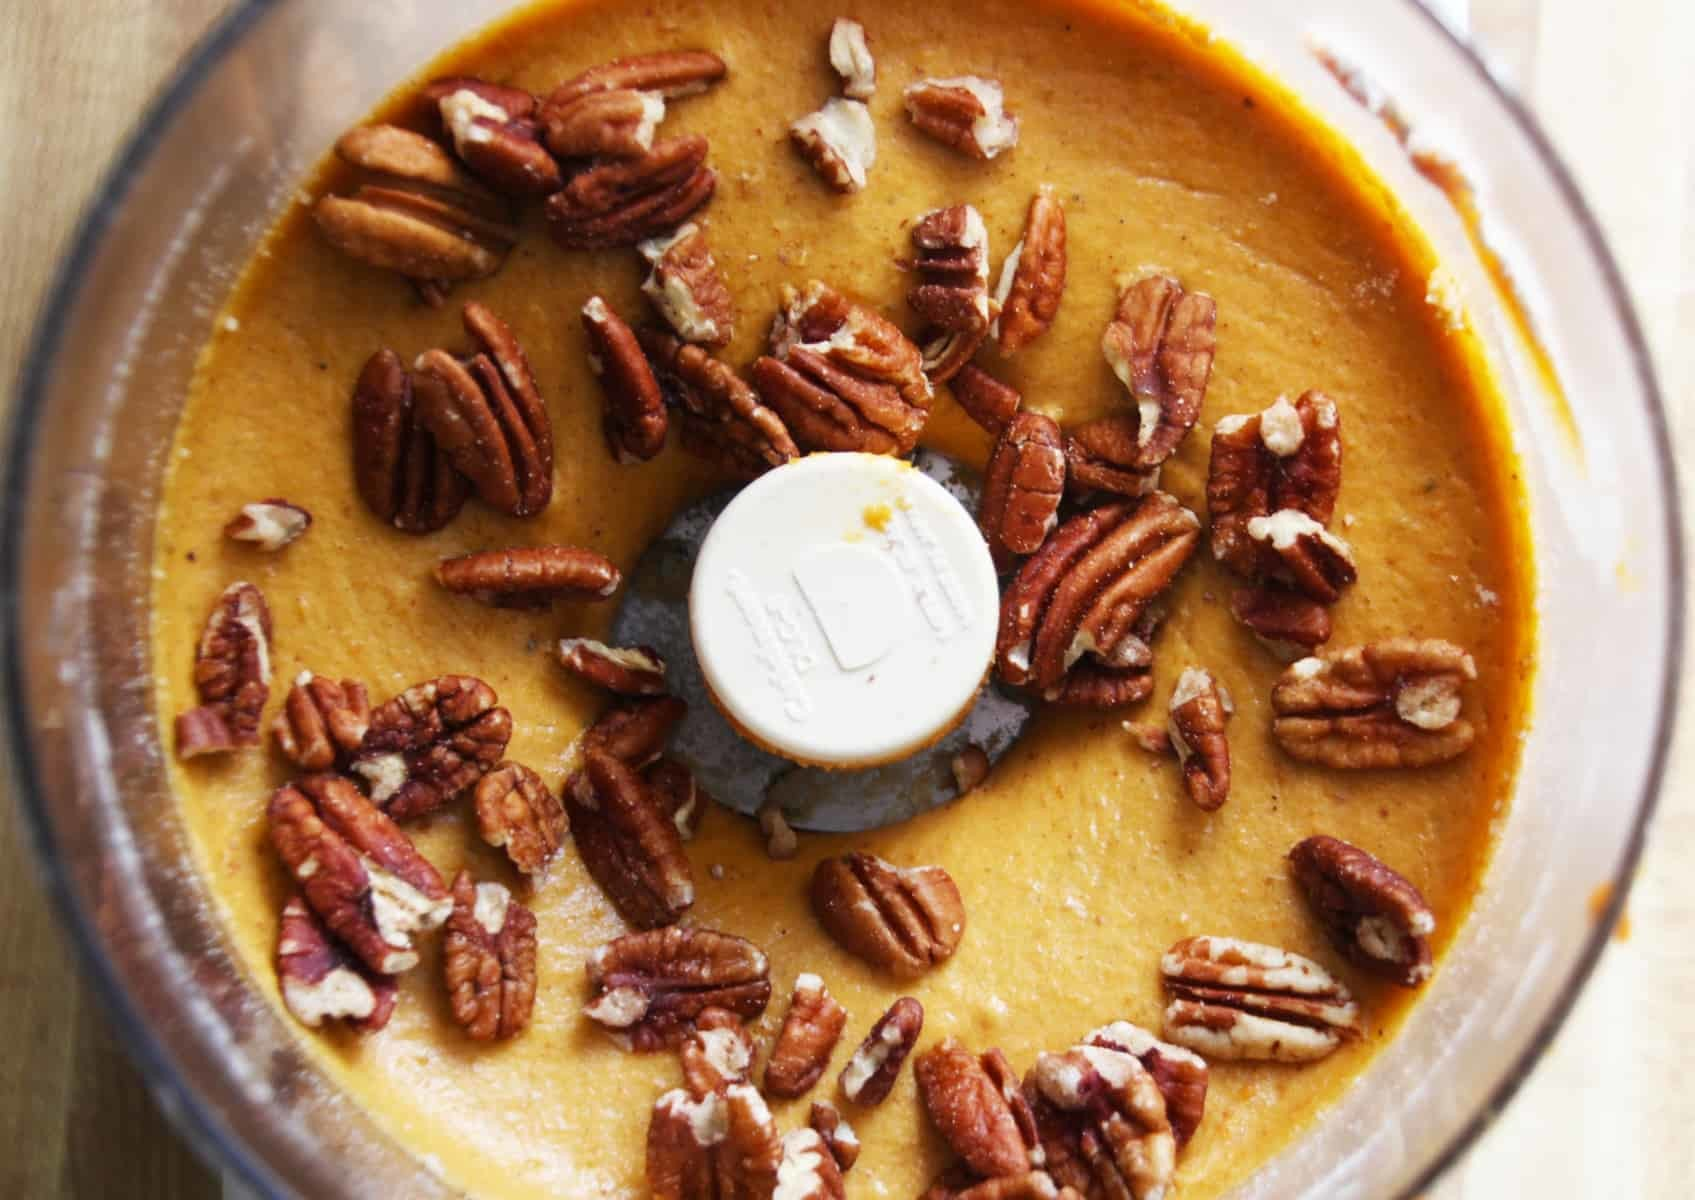 Food processor with batter and pecans.